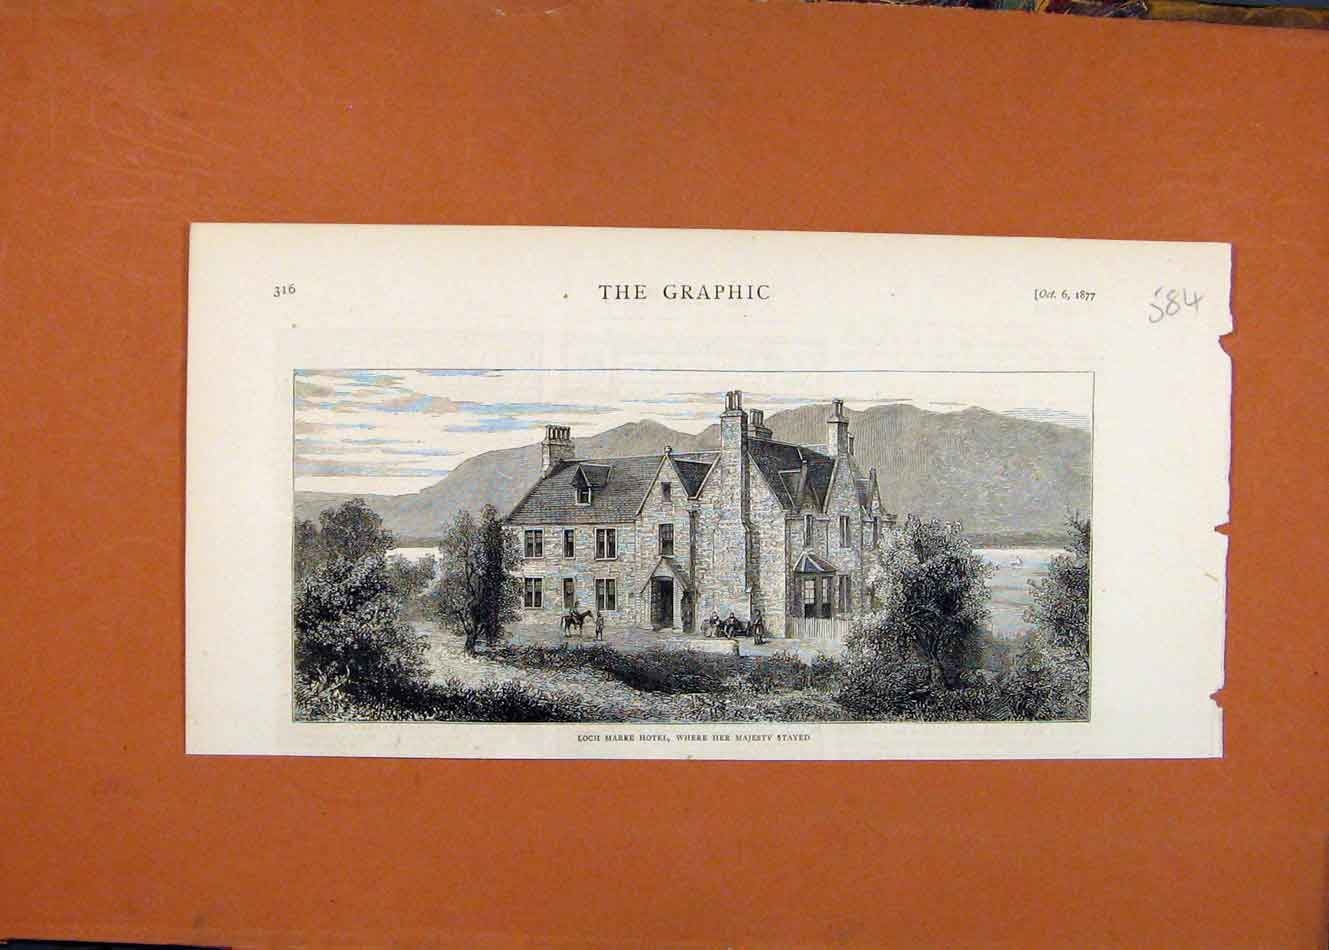 Print Loch Maree Hotel Her Majesty Stayed C1877 The Graphic 848260 Old Original